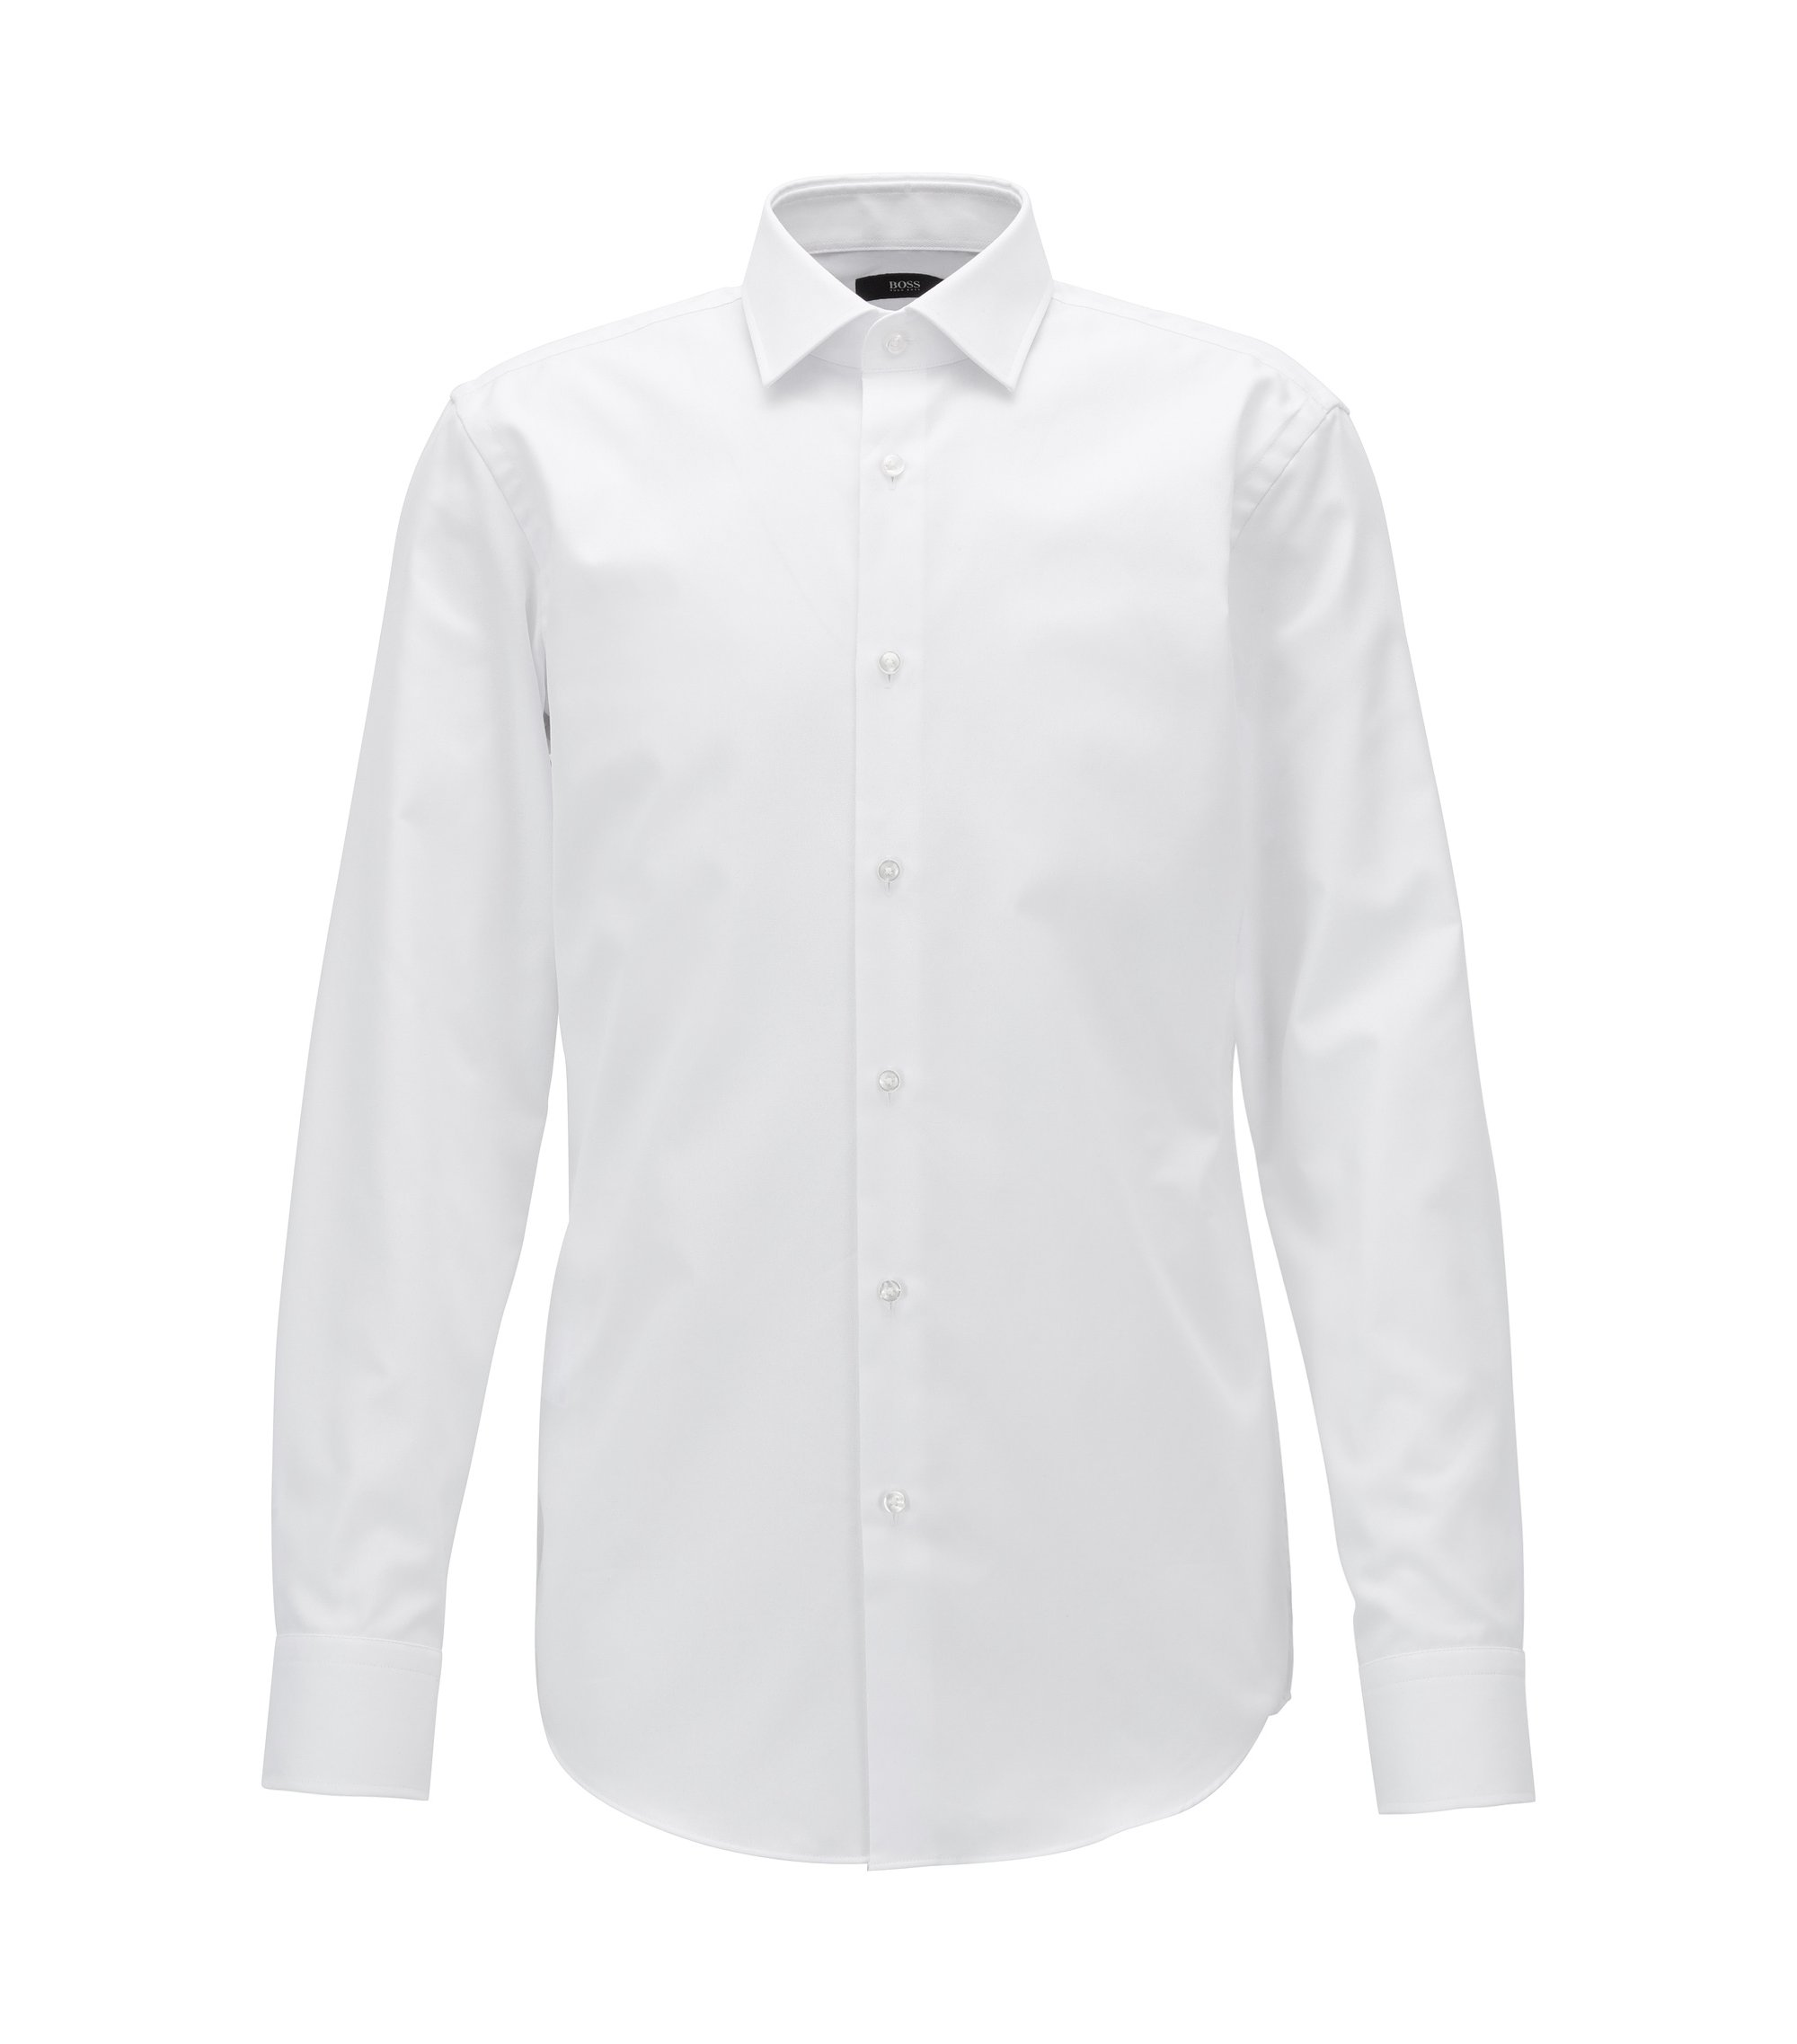 Camicia slim fit a microquadri in cotone con finitura Fresh Active, Bianco